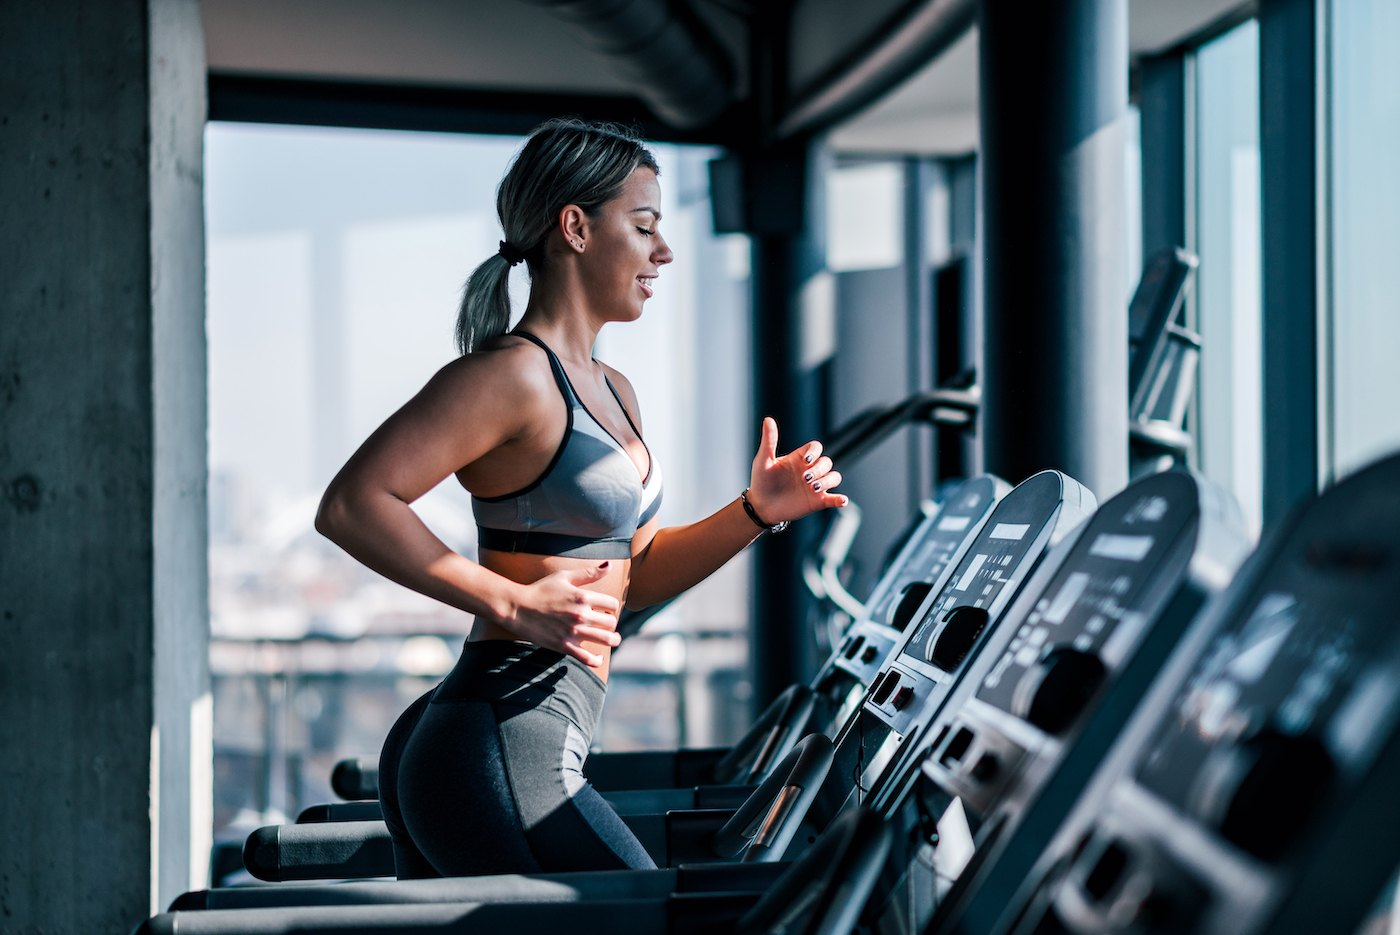 5 Ways to Potentially Make CBD Part of Your Workout Regimen